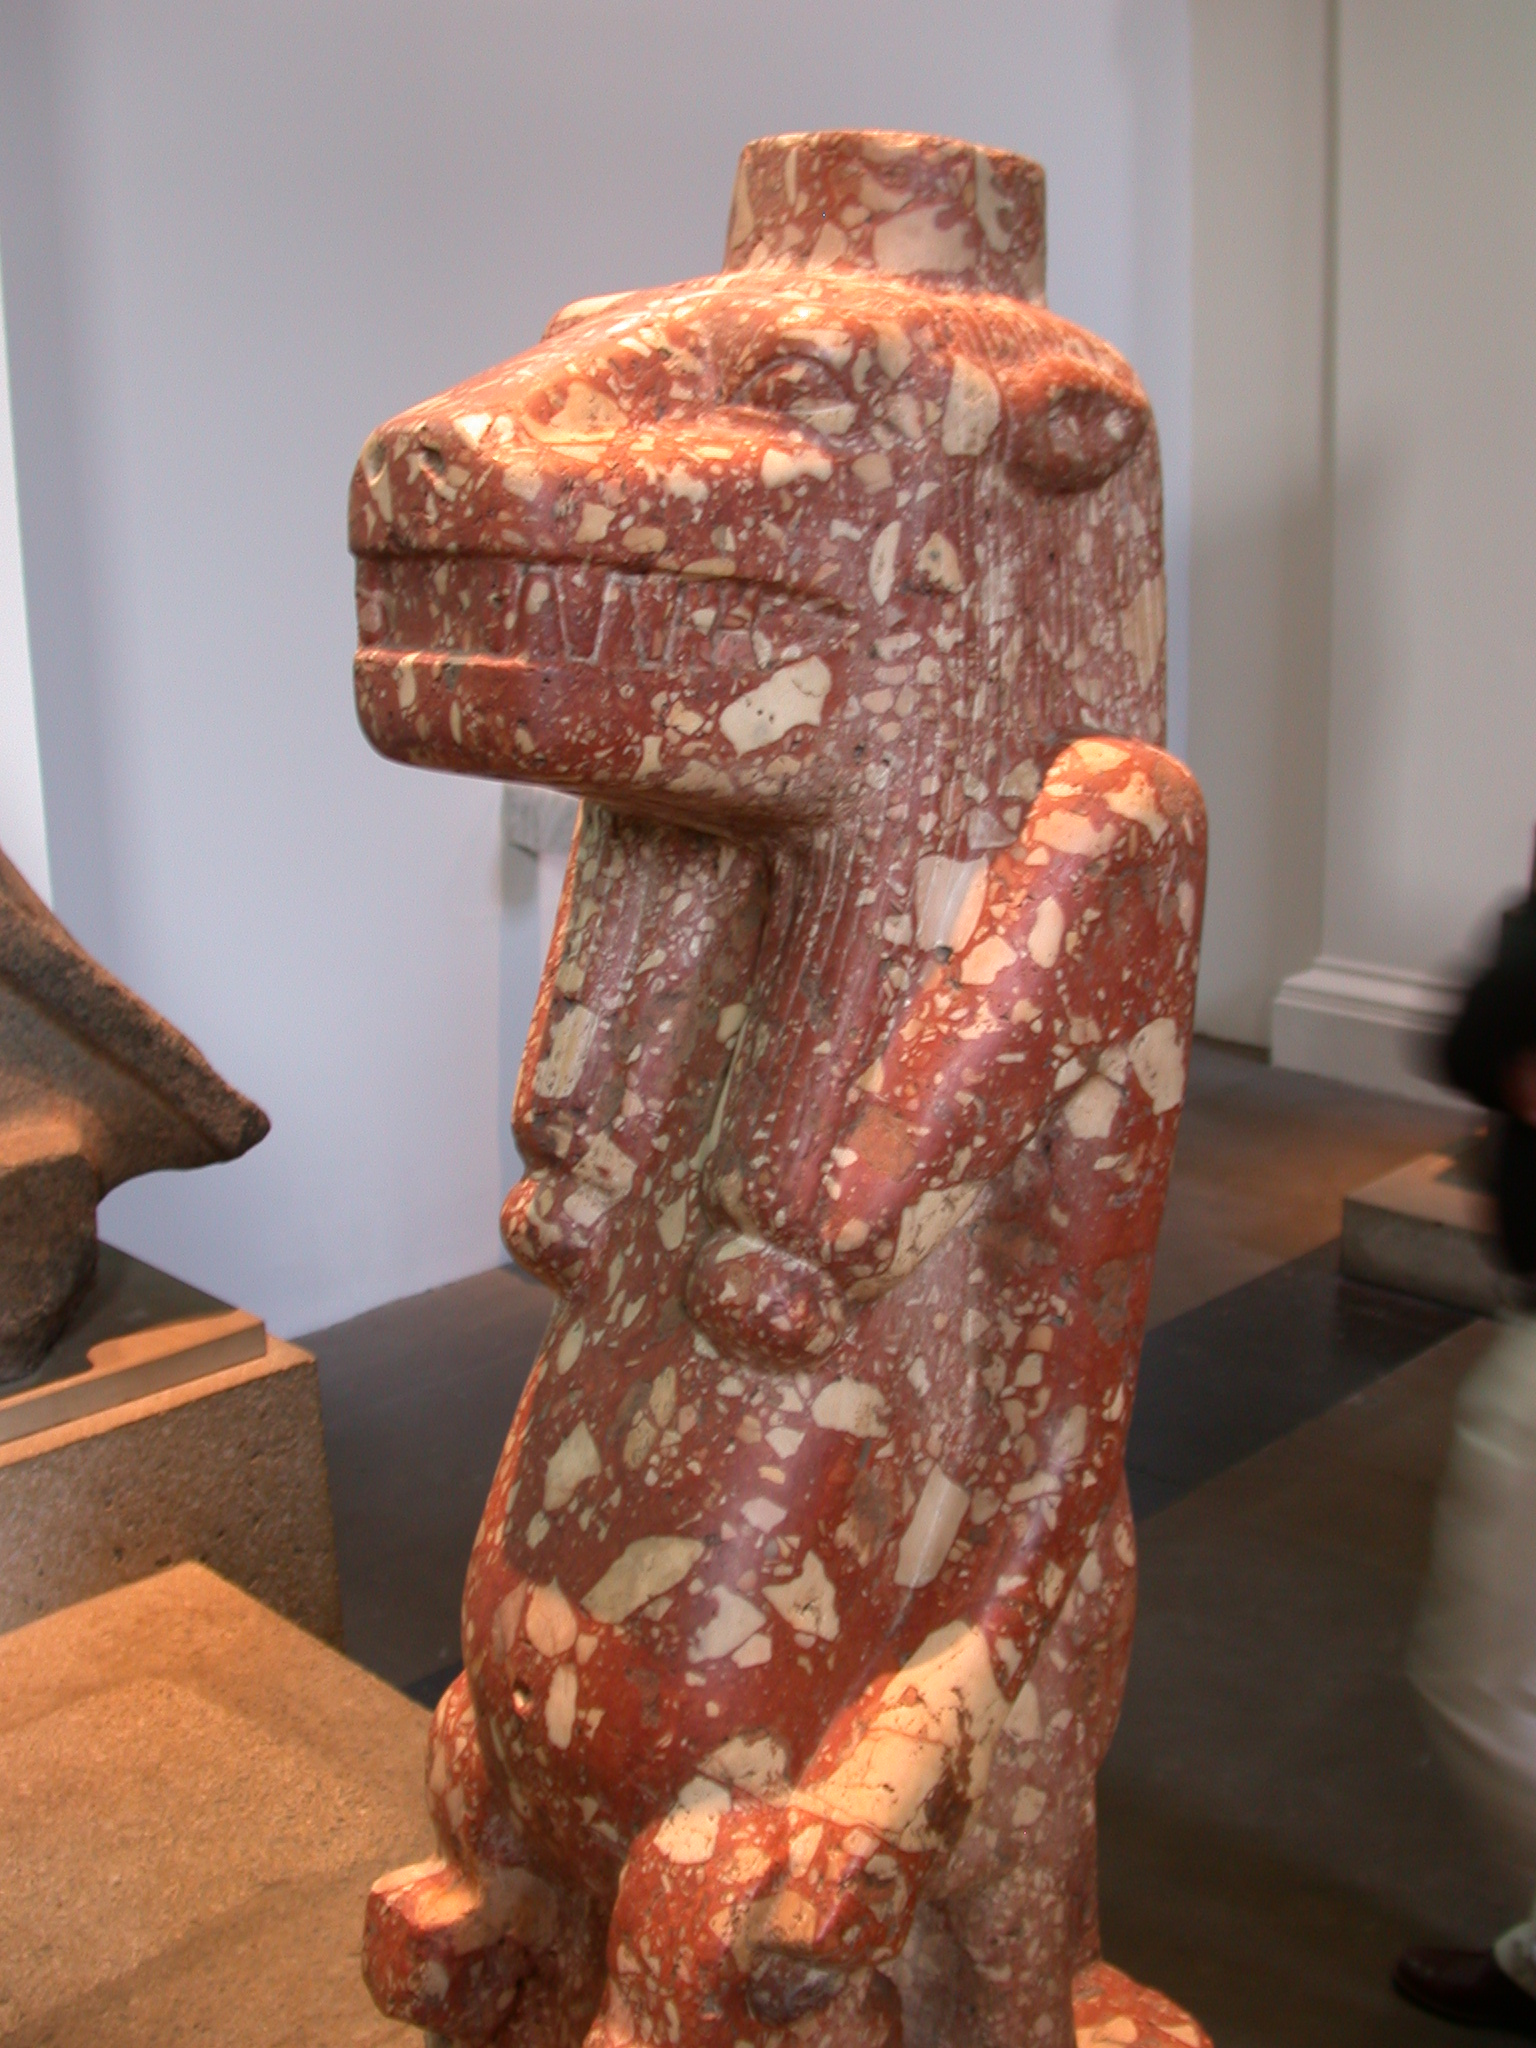 Red Breccia Figure of Tawaret or Tuaret, Late Period, Egyptian Gallery 4, British Museum, London, England